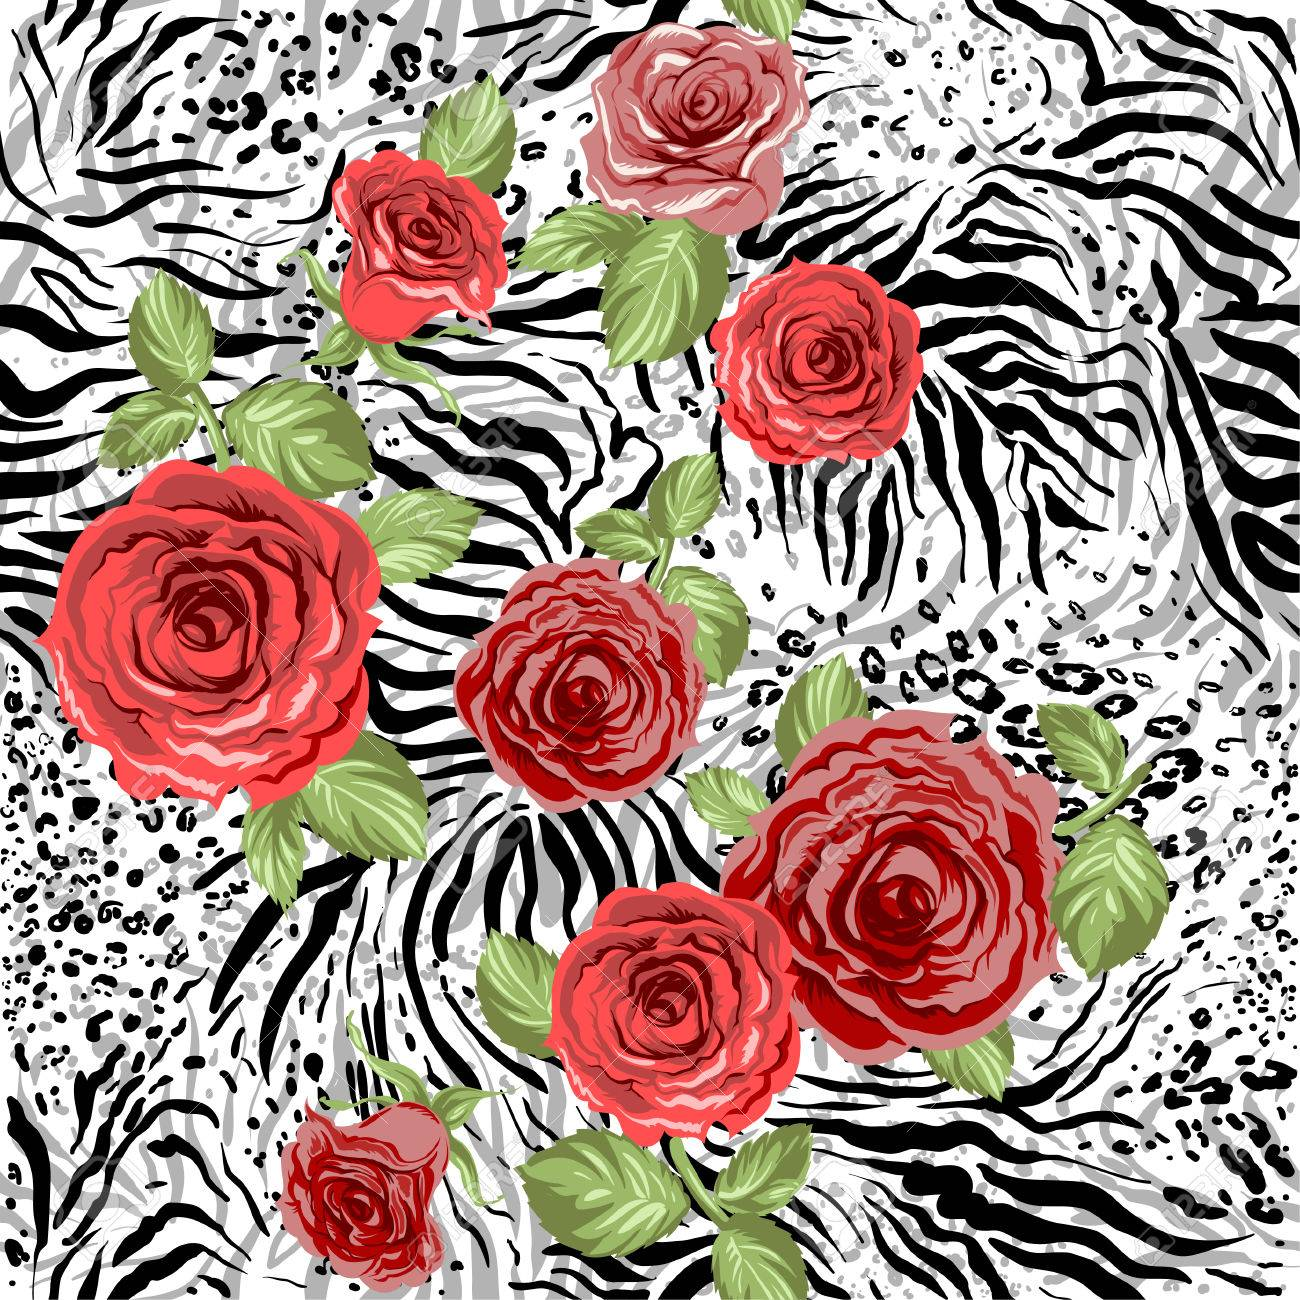 Repeating animal pattern and flowers. Seamless background - 32439844